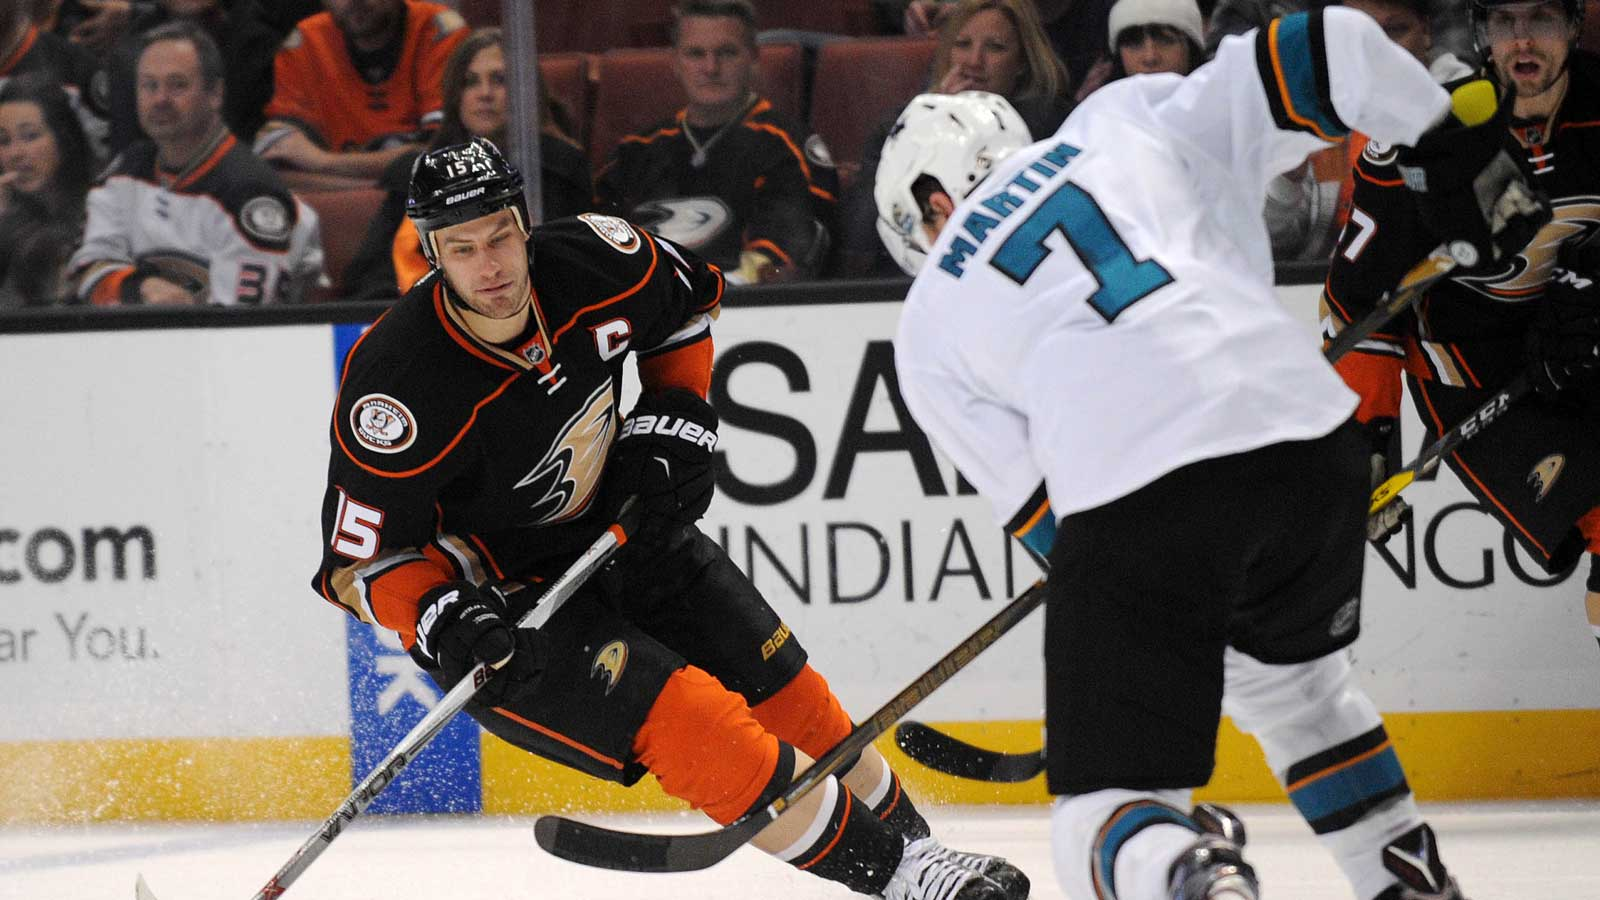 Sharks face Ducks in return home